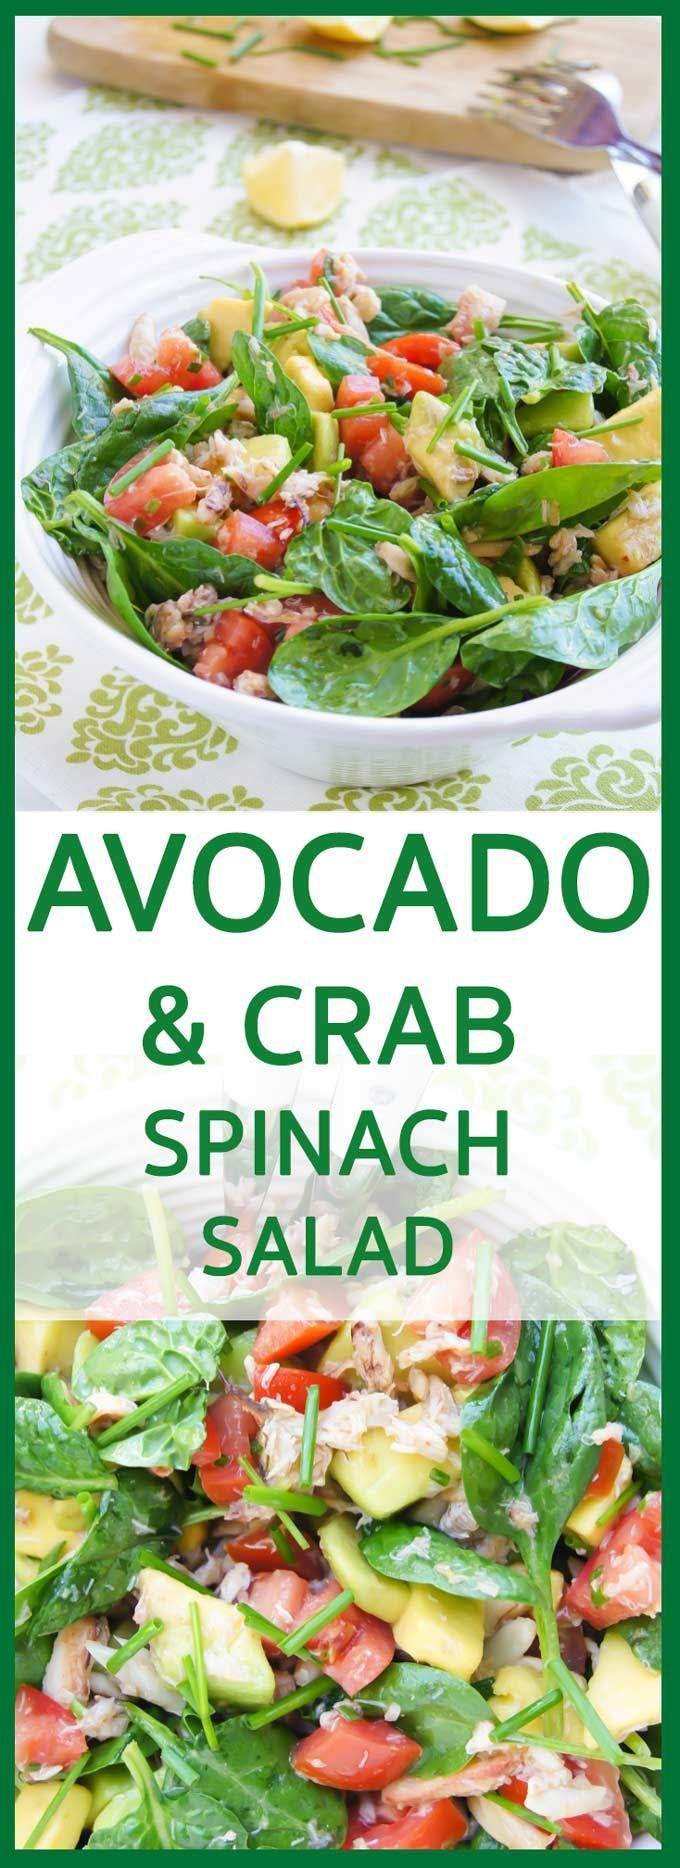 Fresh, juicy and creamy Crab, Avocado, Tomato and Spinach Salad recipe is really delicious, 10 min, easy and healthy lunch – perfect crowd pleaser. INGREDIENTS 230g (8 oz) white crab meat – I used crab claws 2-3 handfuls of fresh baby spinach leaves 3 plum tomatoes – sliced into a bite size pieces 3 HassMore